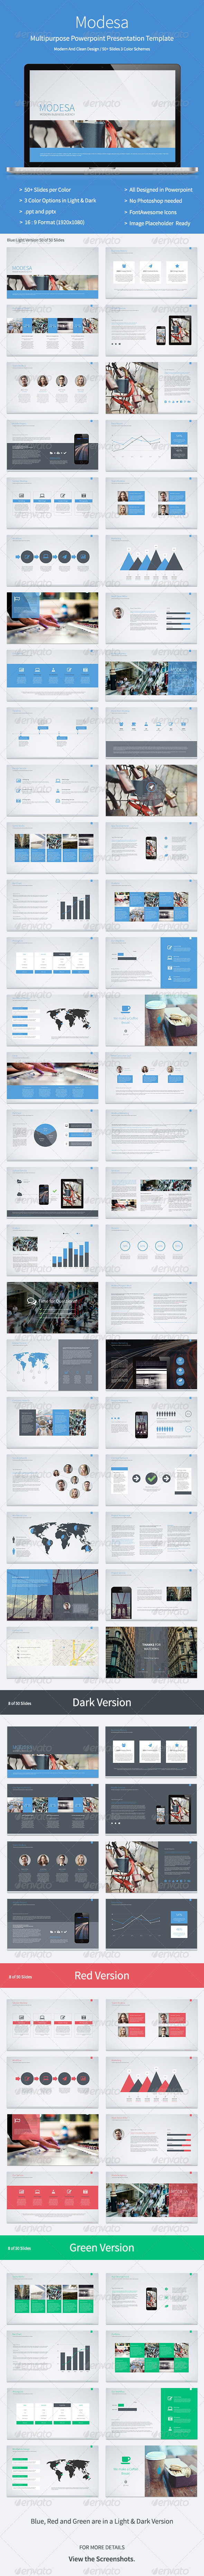 GraphicRiver Modesa Powerpoint Multipurpose Template 8296694